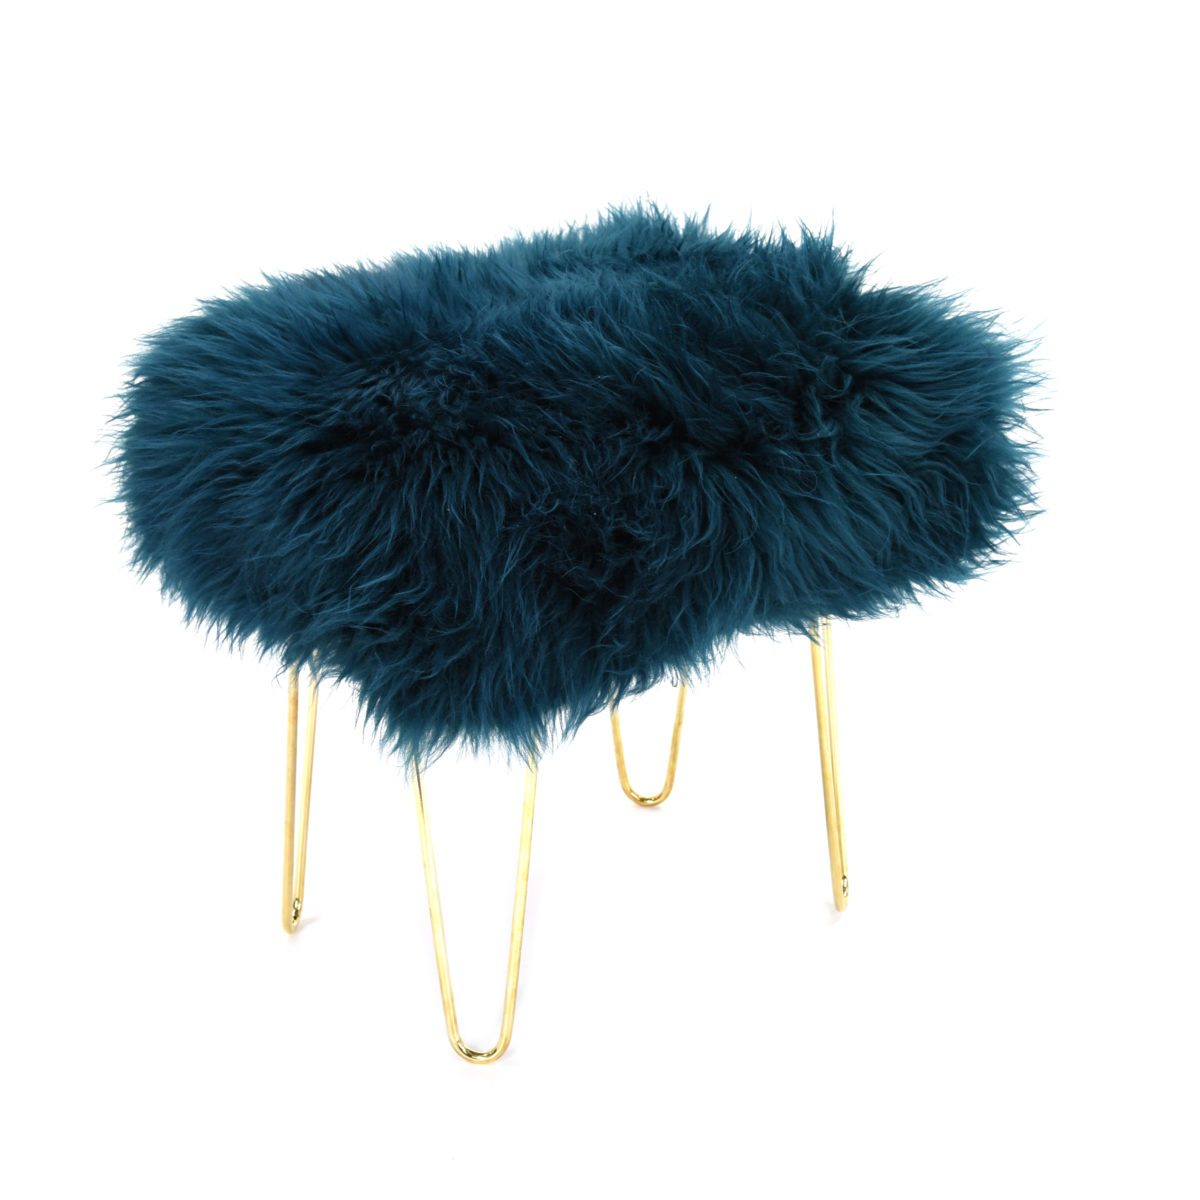 sheepskin chair covers for recliners uk cover bows how to tie black hairpin beauty stool  primrose and plum